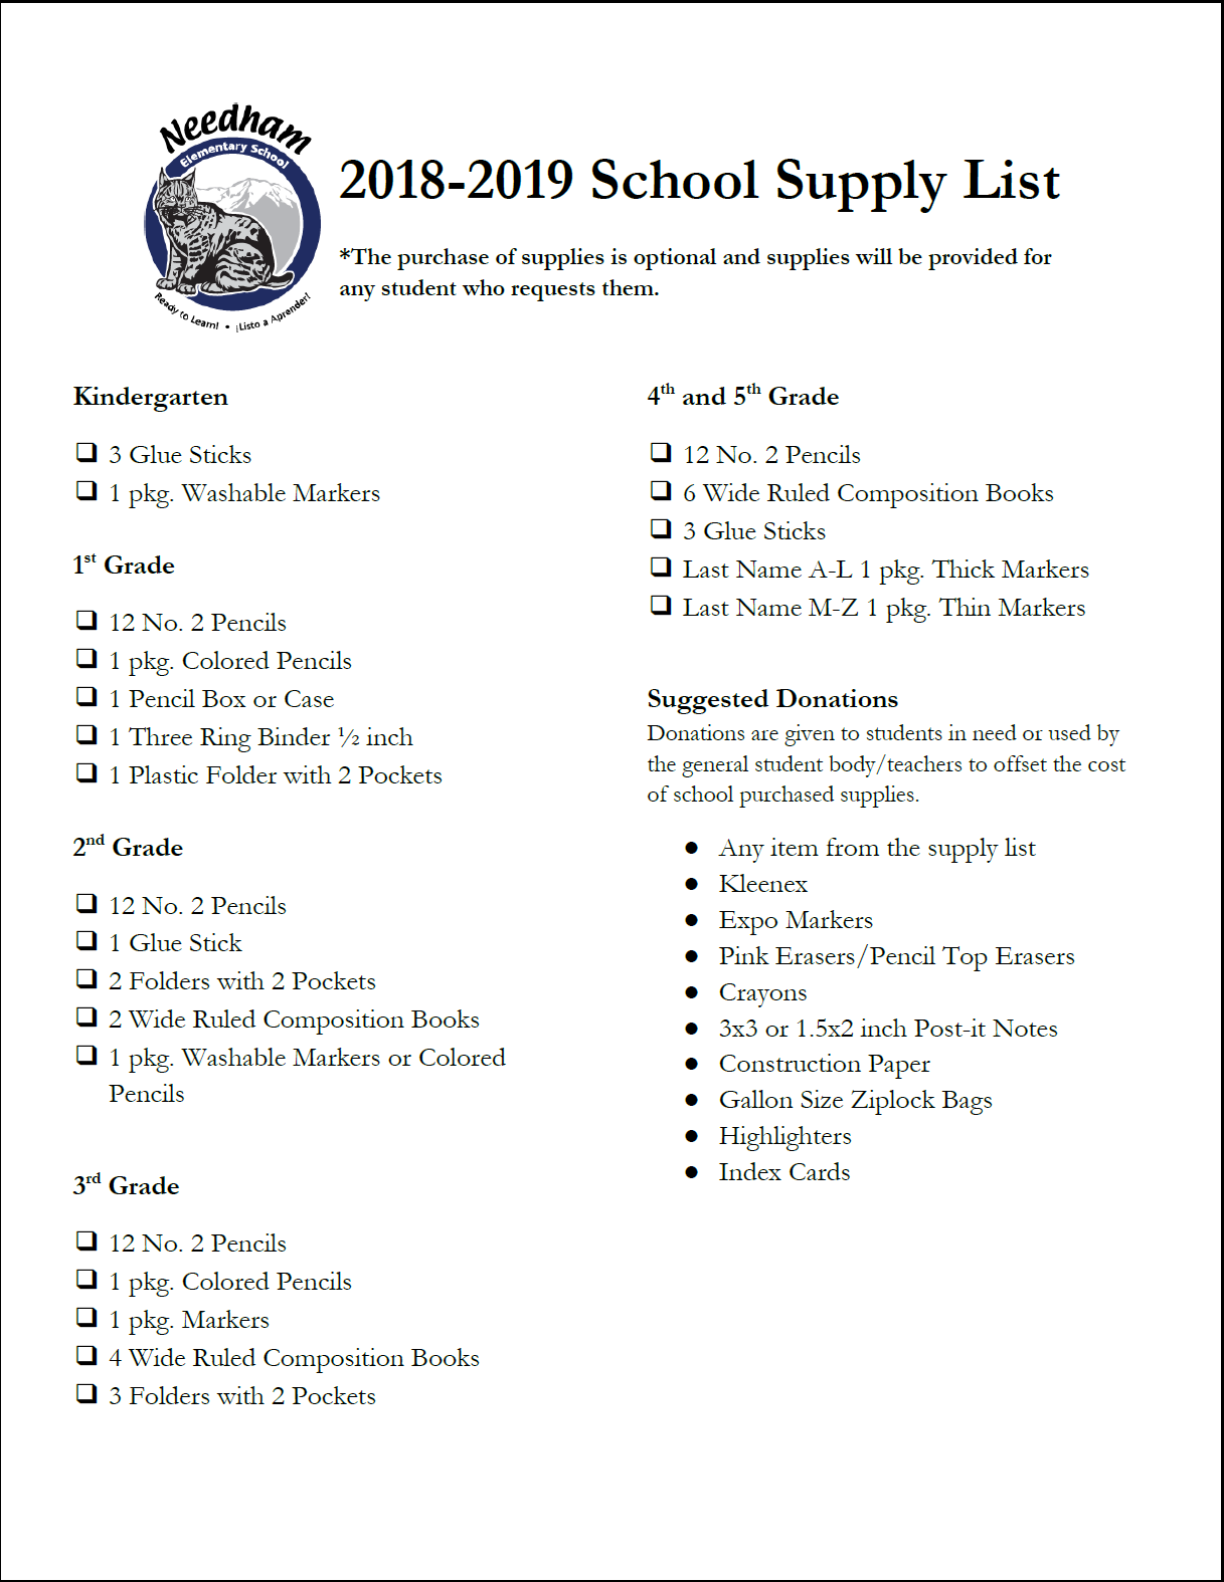 Needham School Supply List for 2018-2019